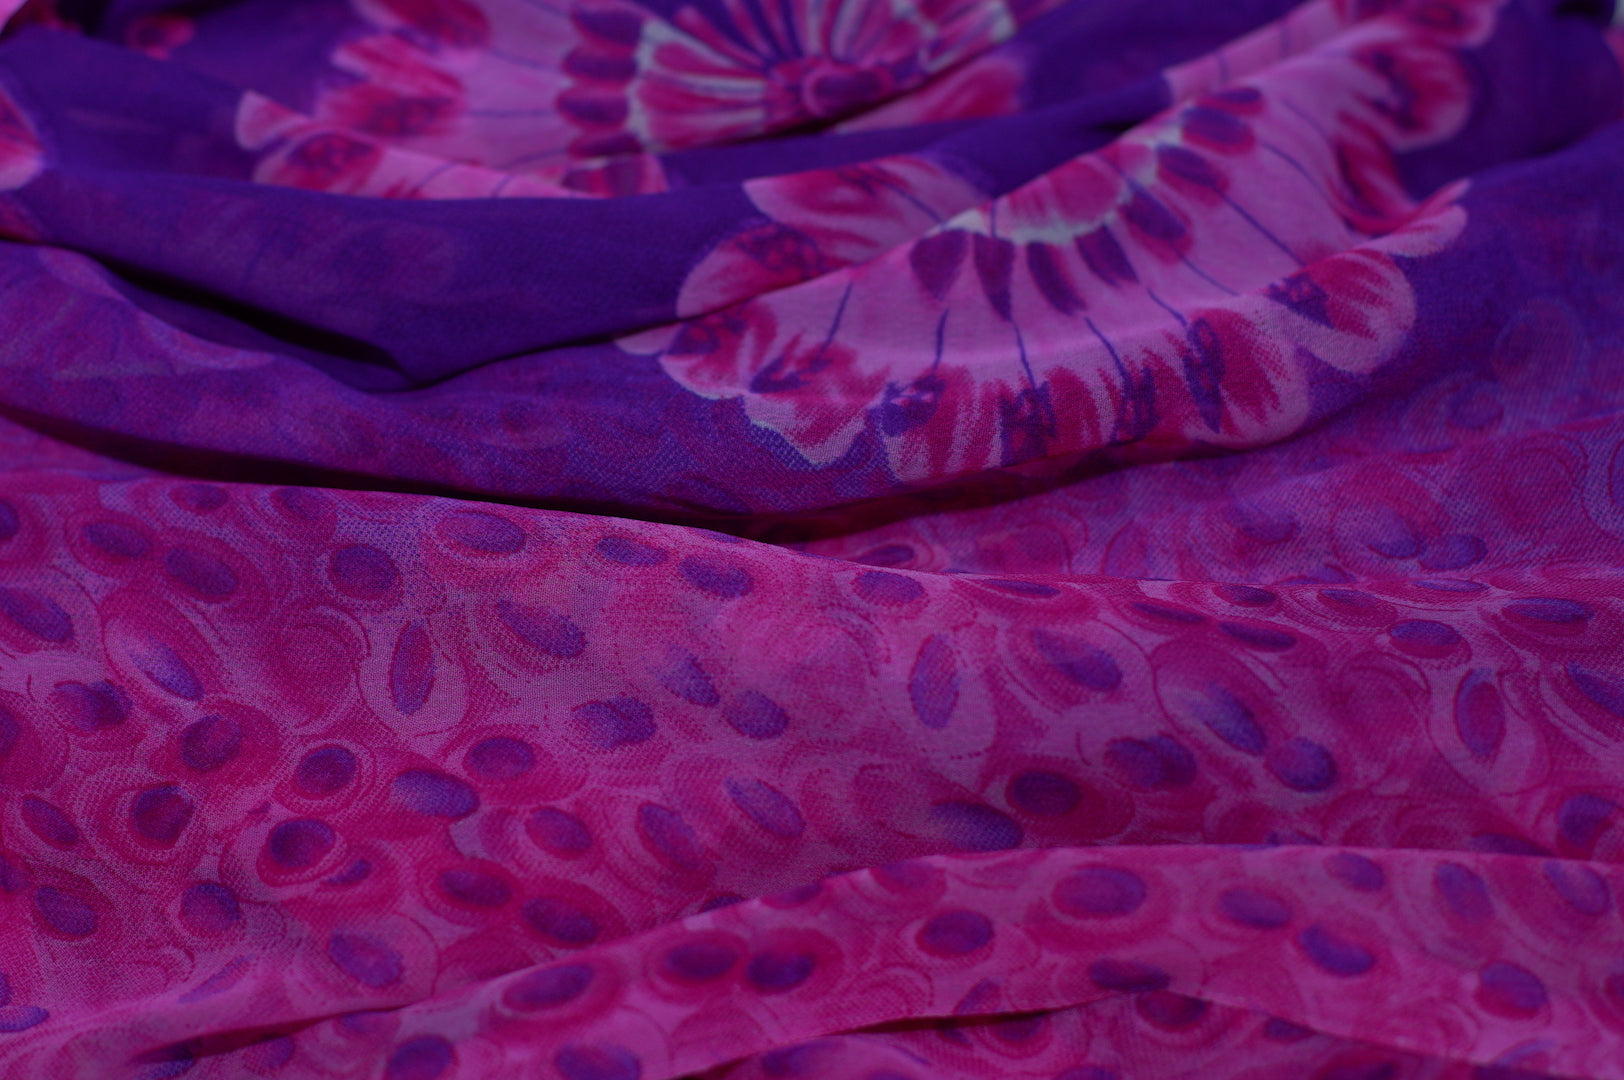 Zxq739 Purple Soft Chiffon With Big Pink Flowers Shoxan